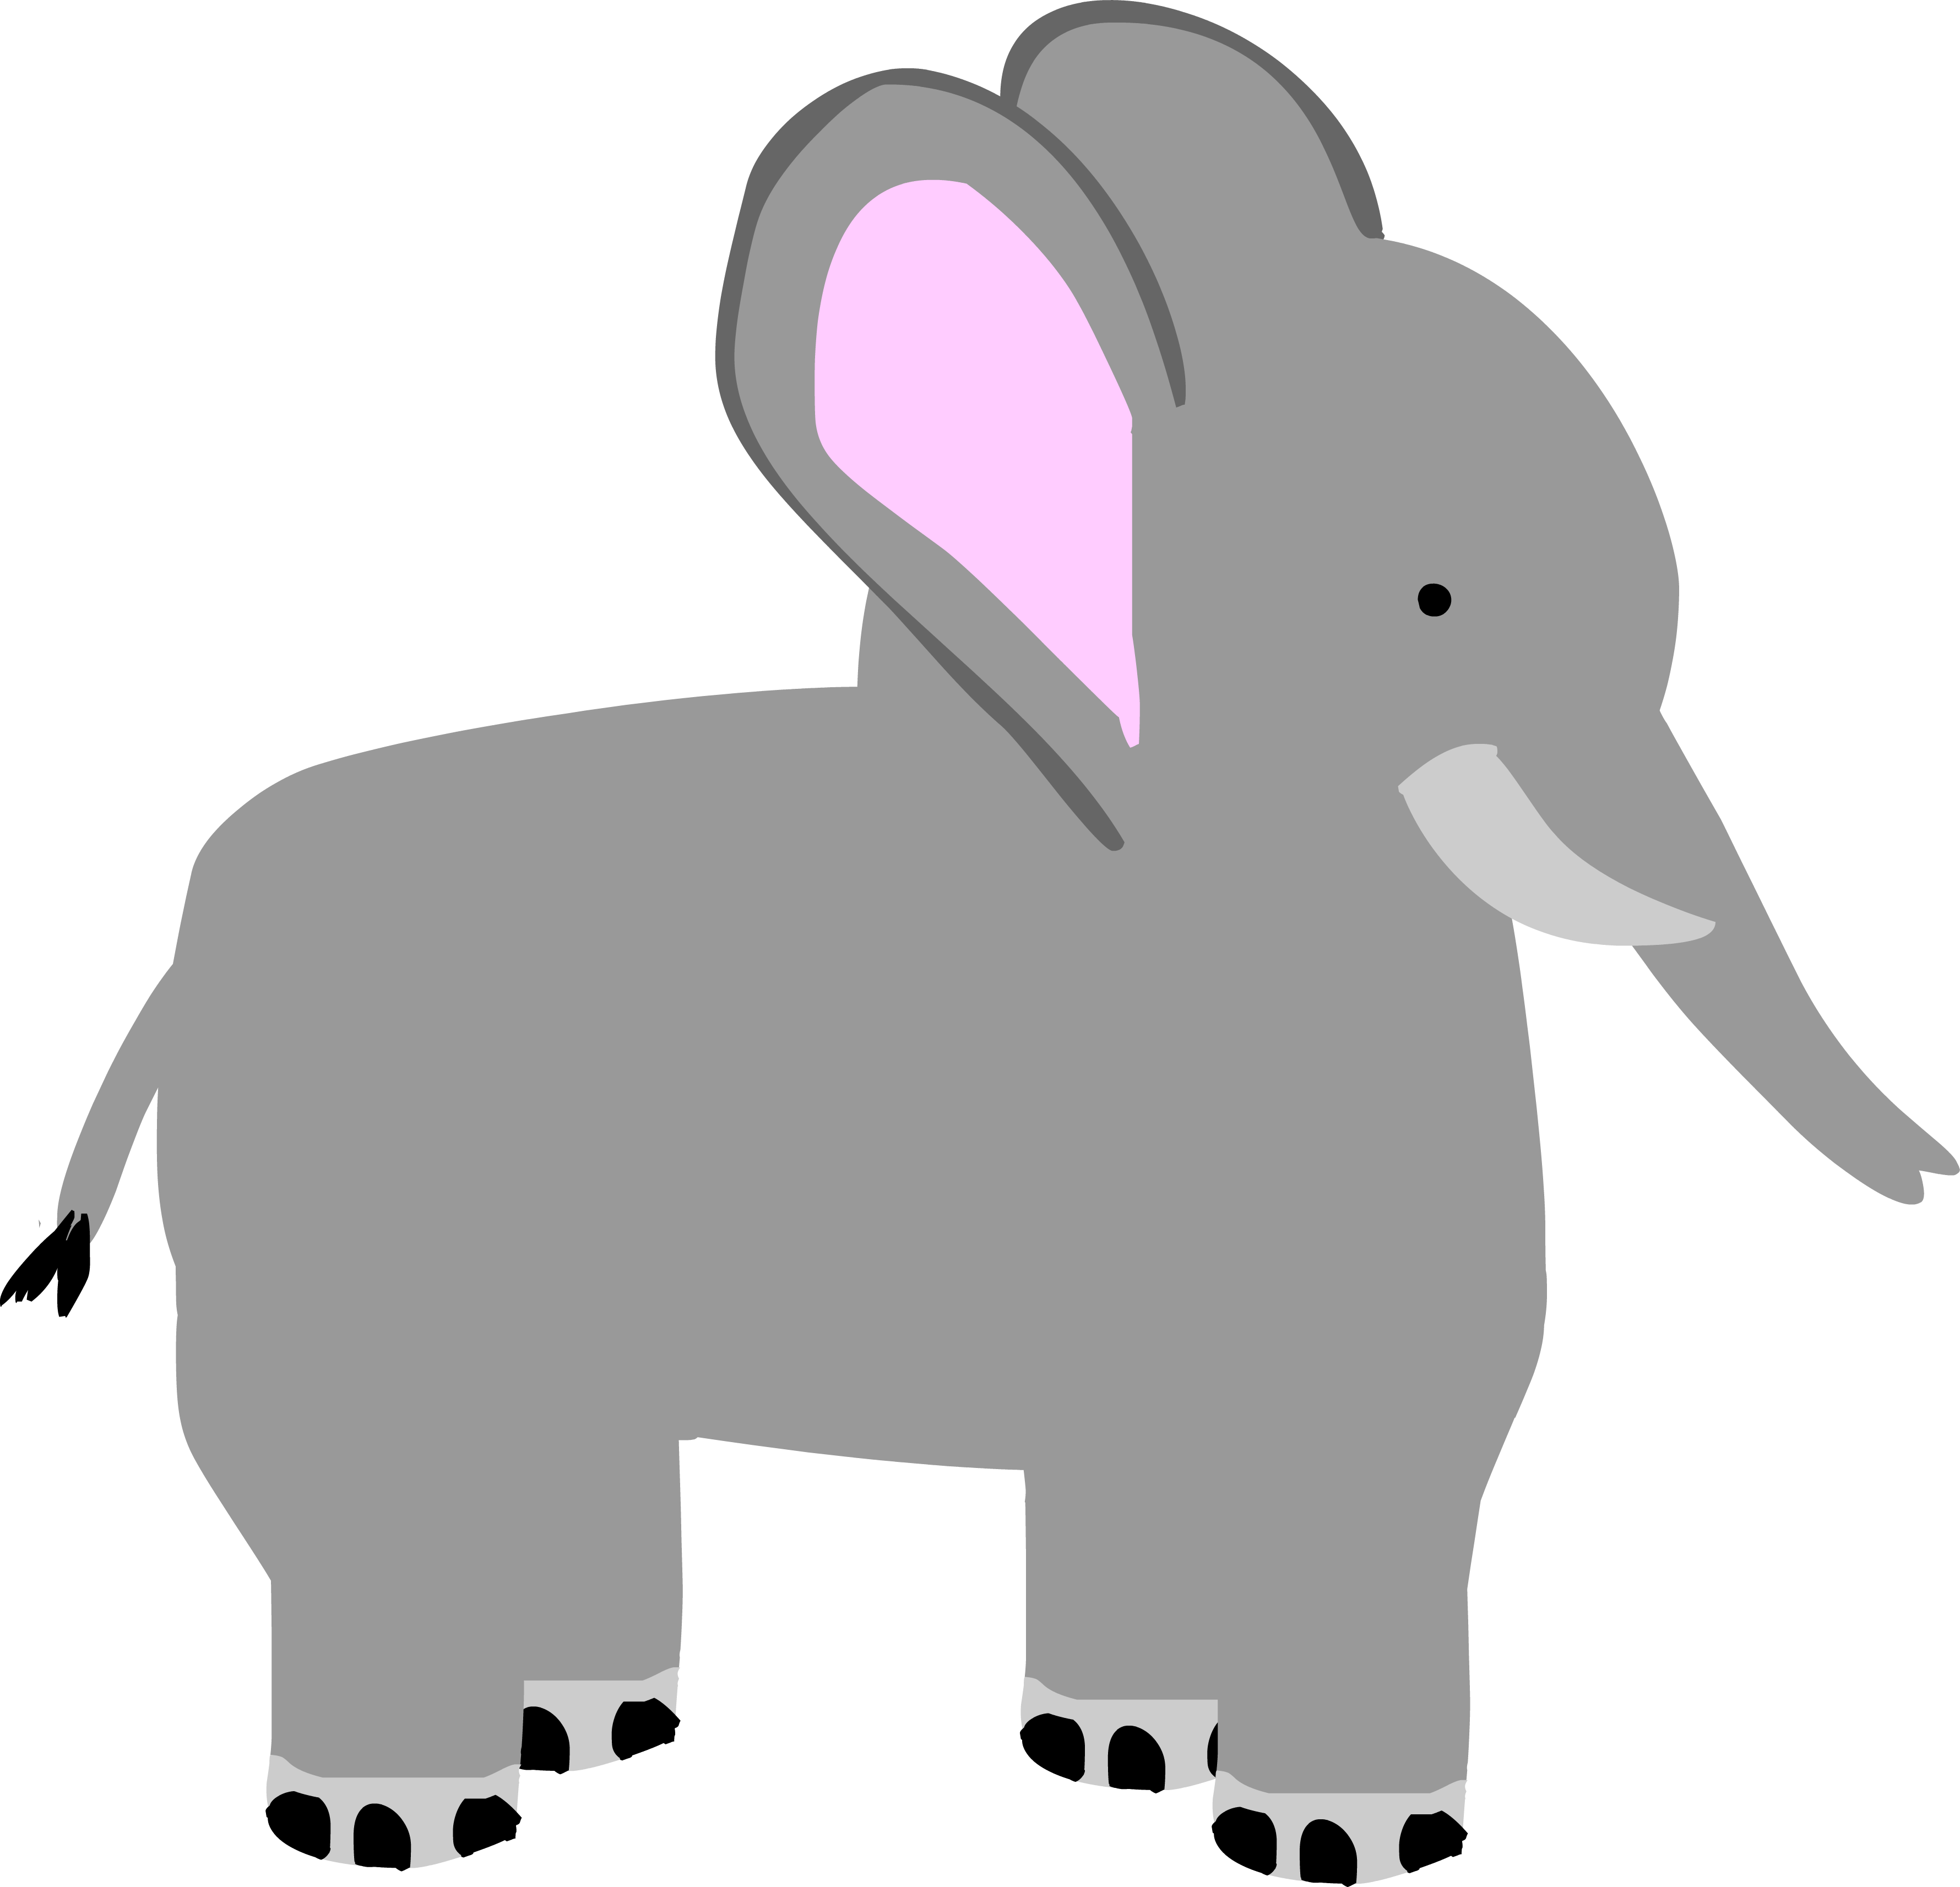 Characters game family friendly. Peanuts clipart elephant eats